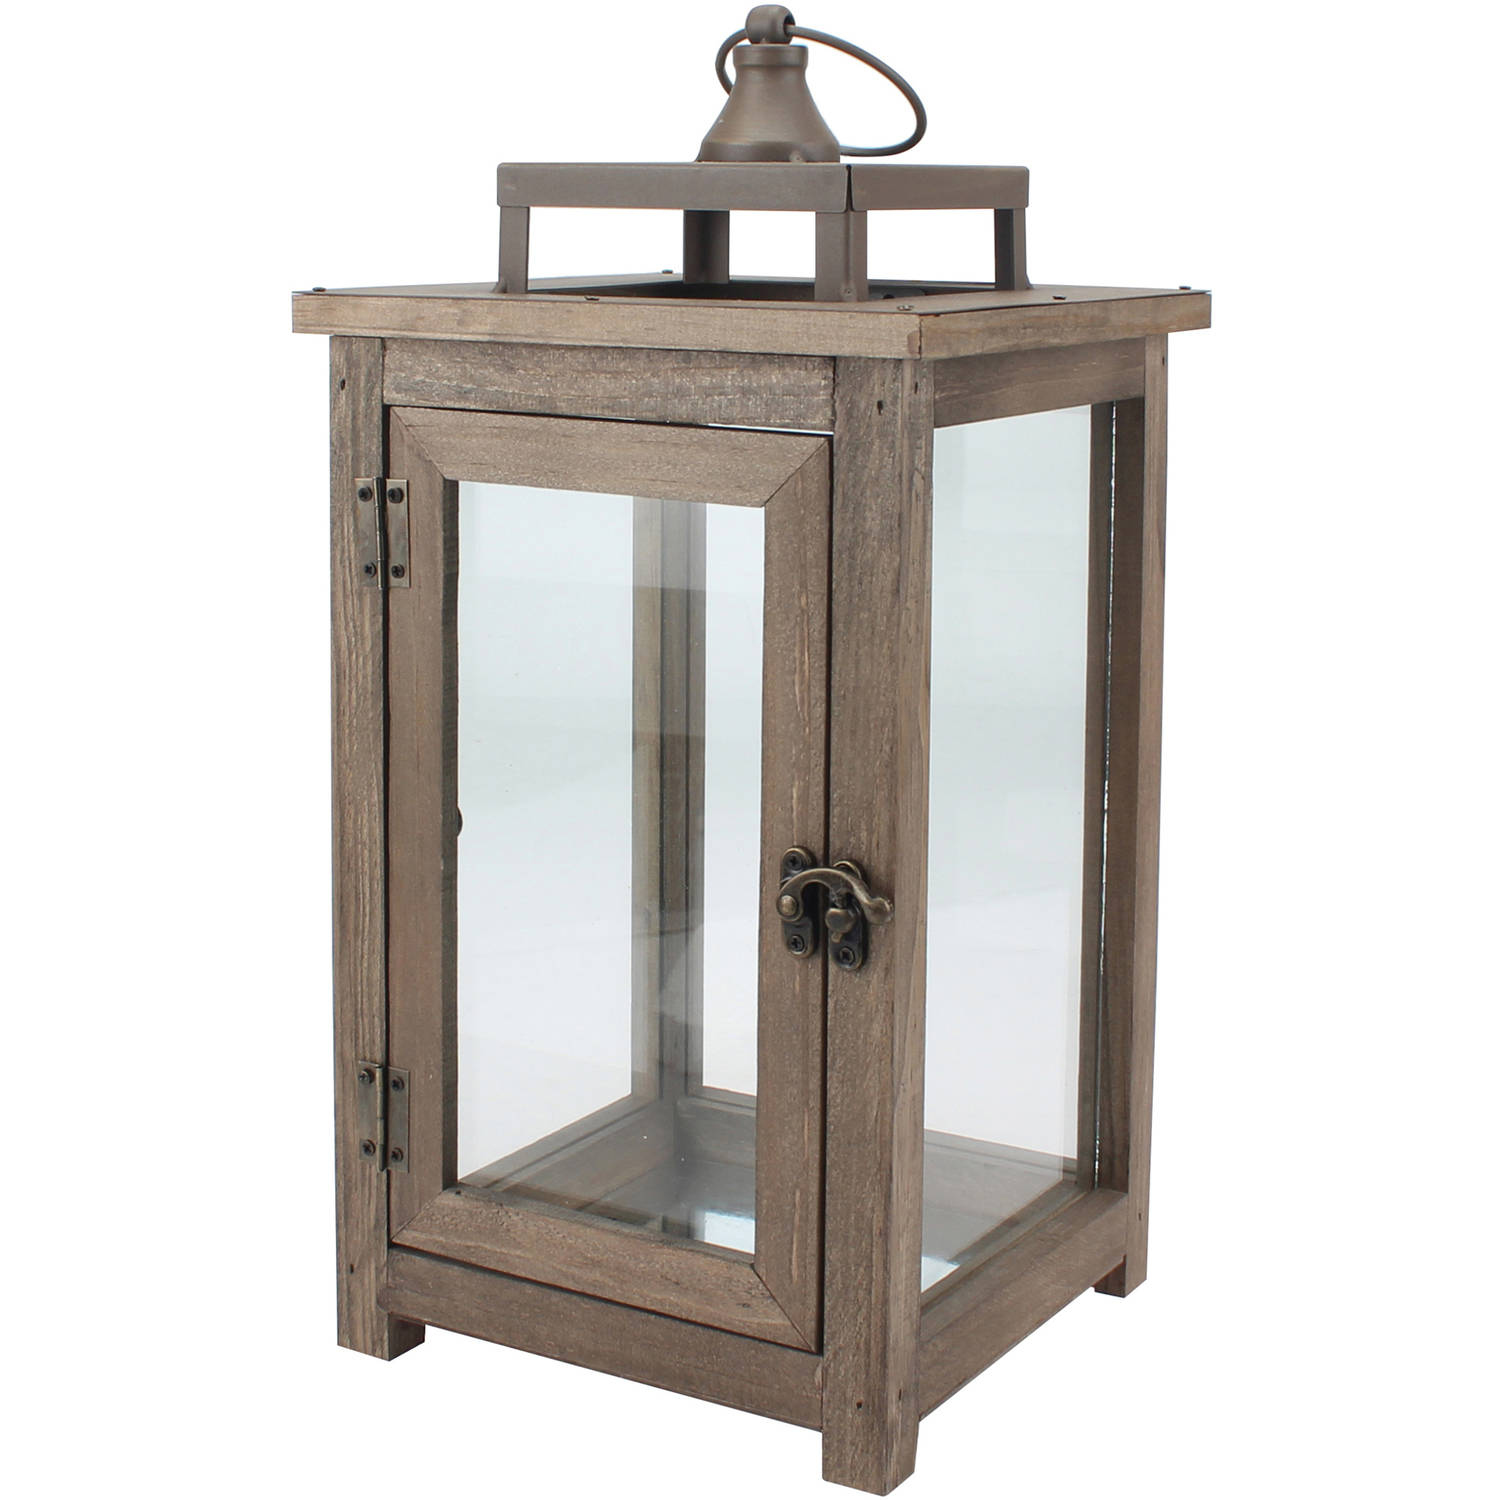 Better Homes and Gardens Large Lantern, Farmhouse Rustic Finish